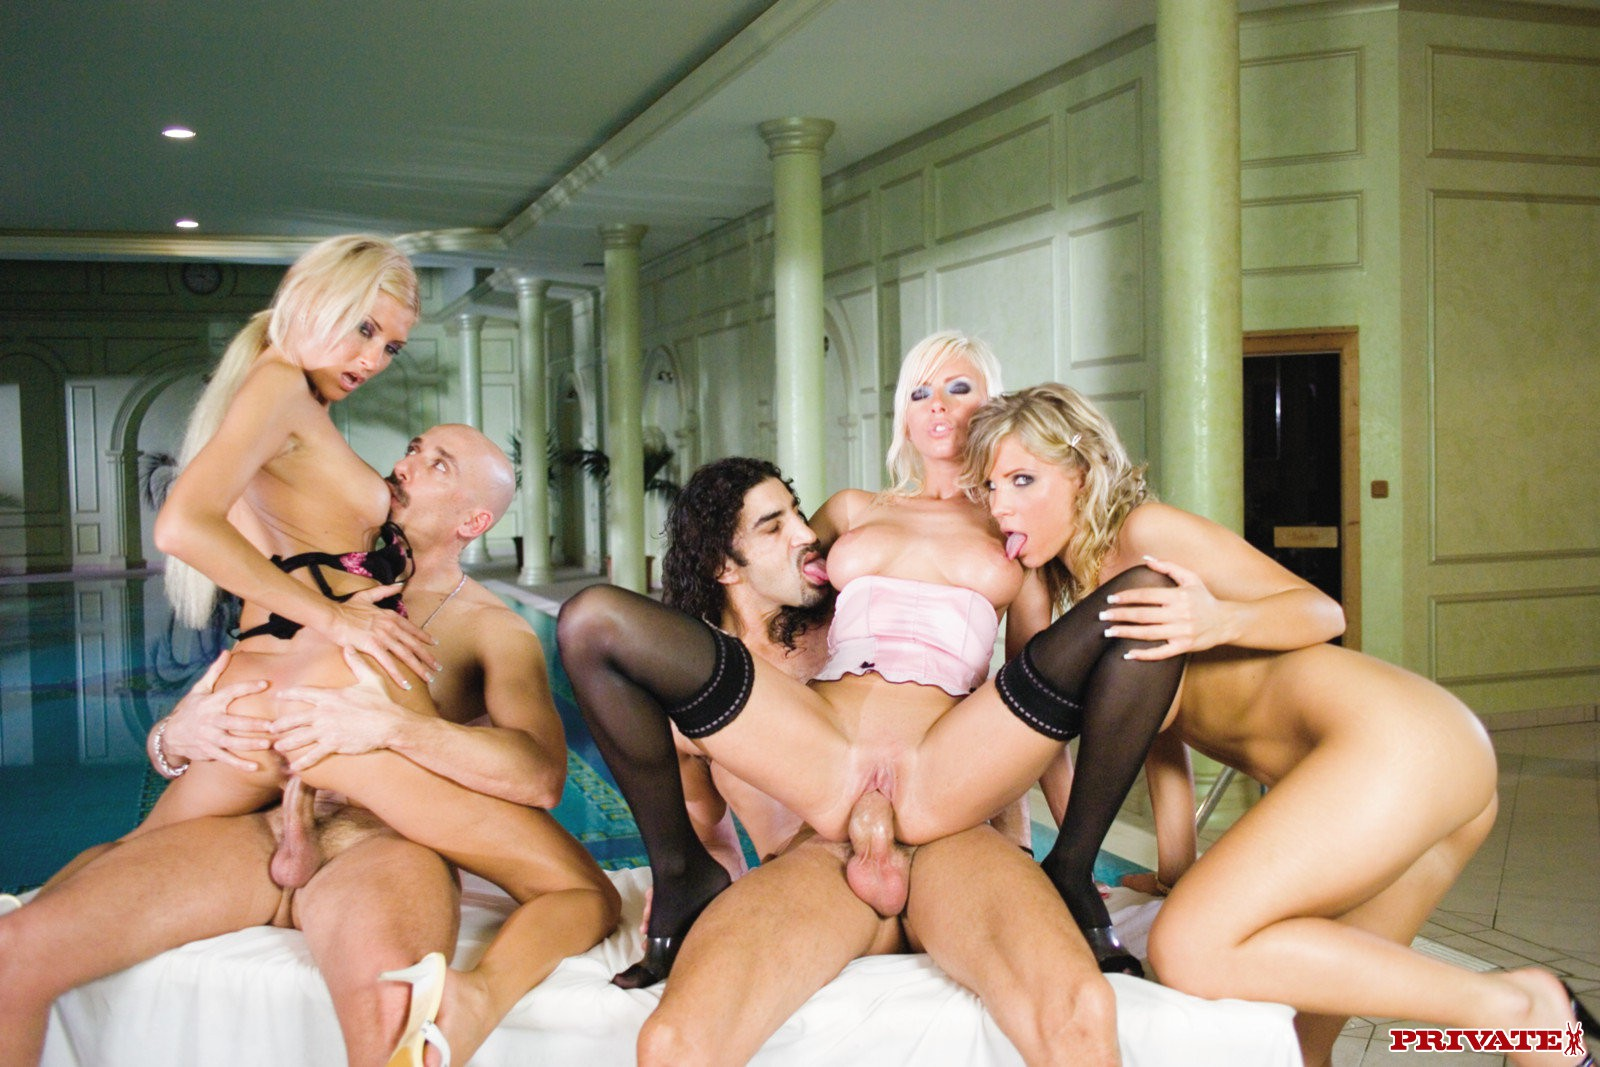 Hookups free orgy video gallery — 12